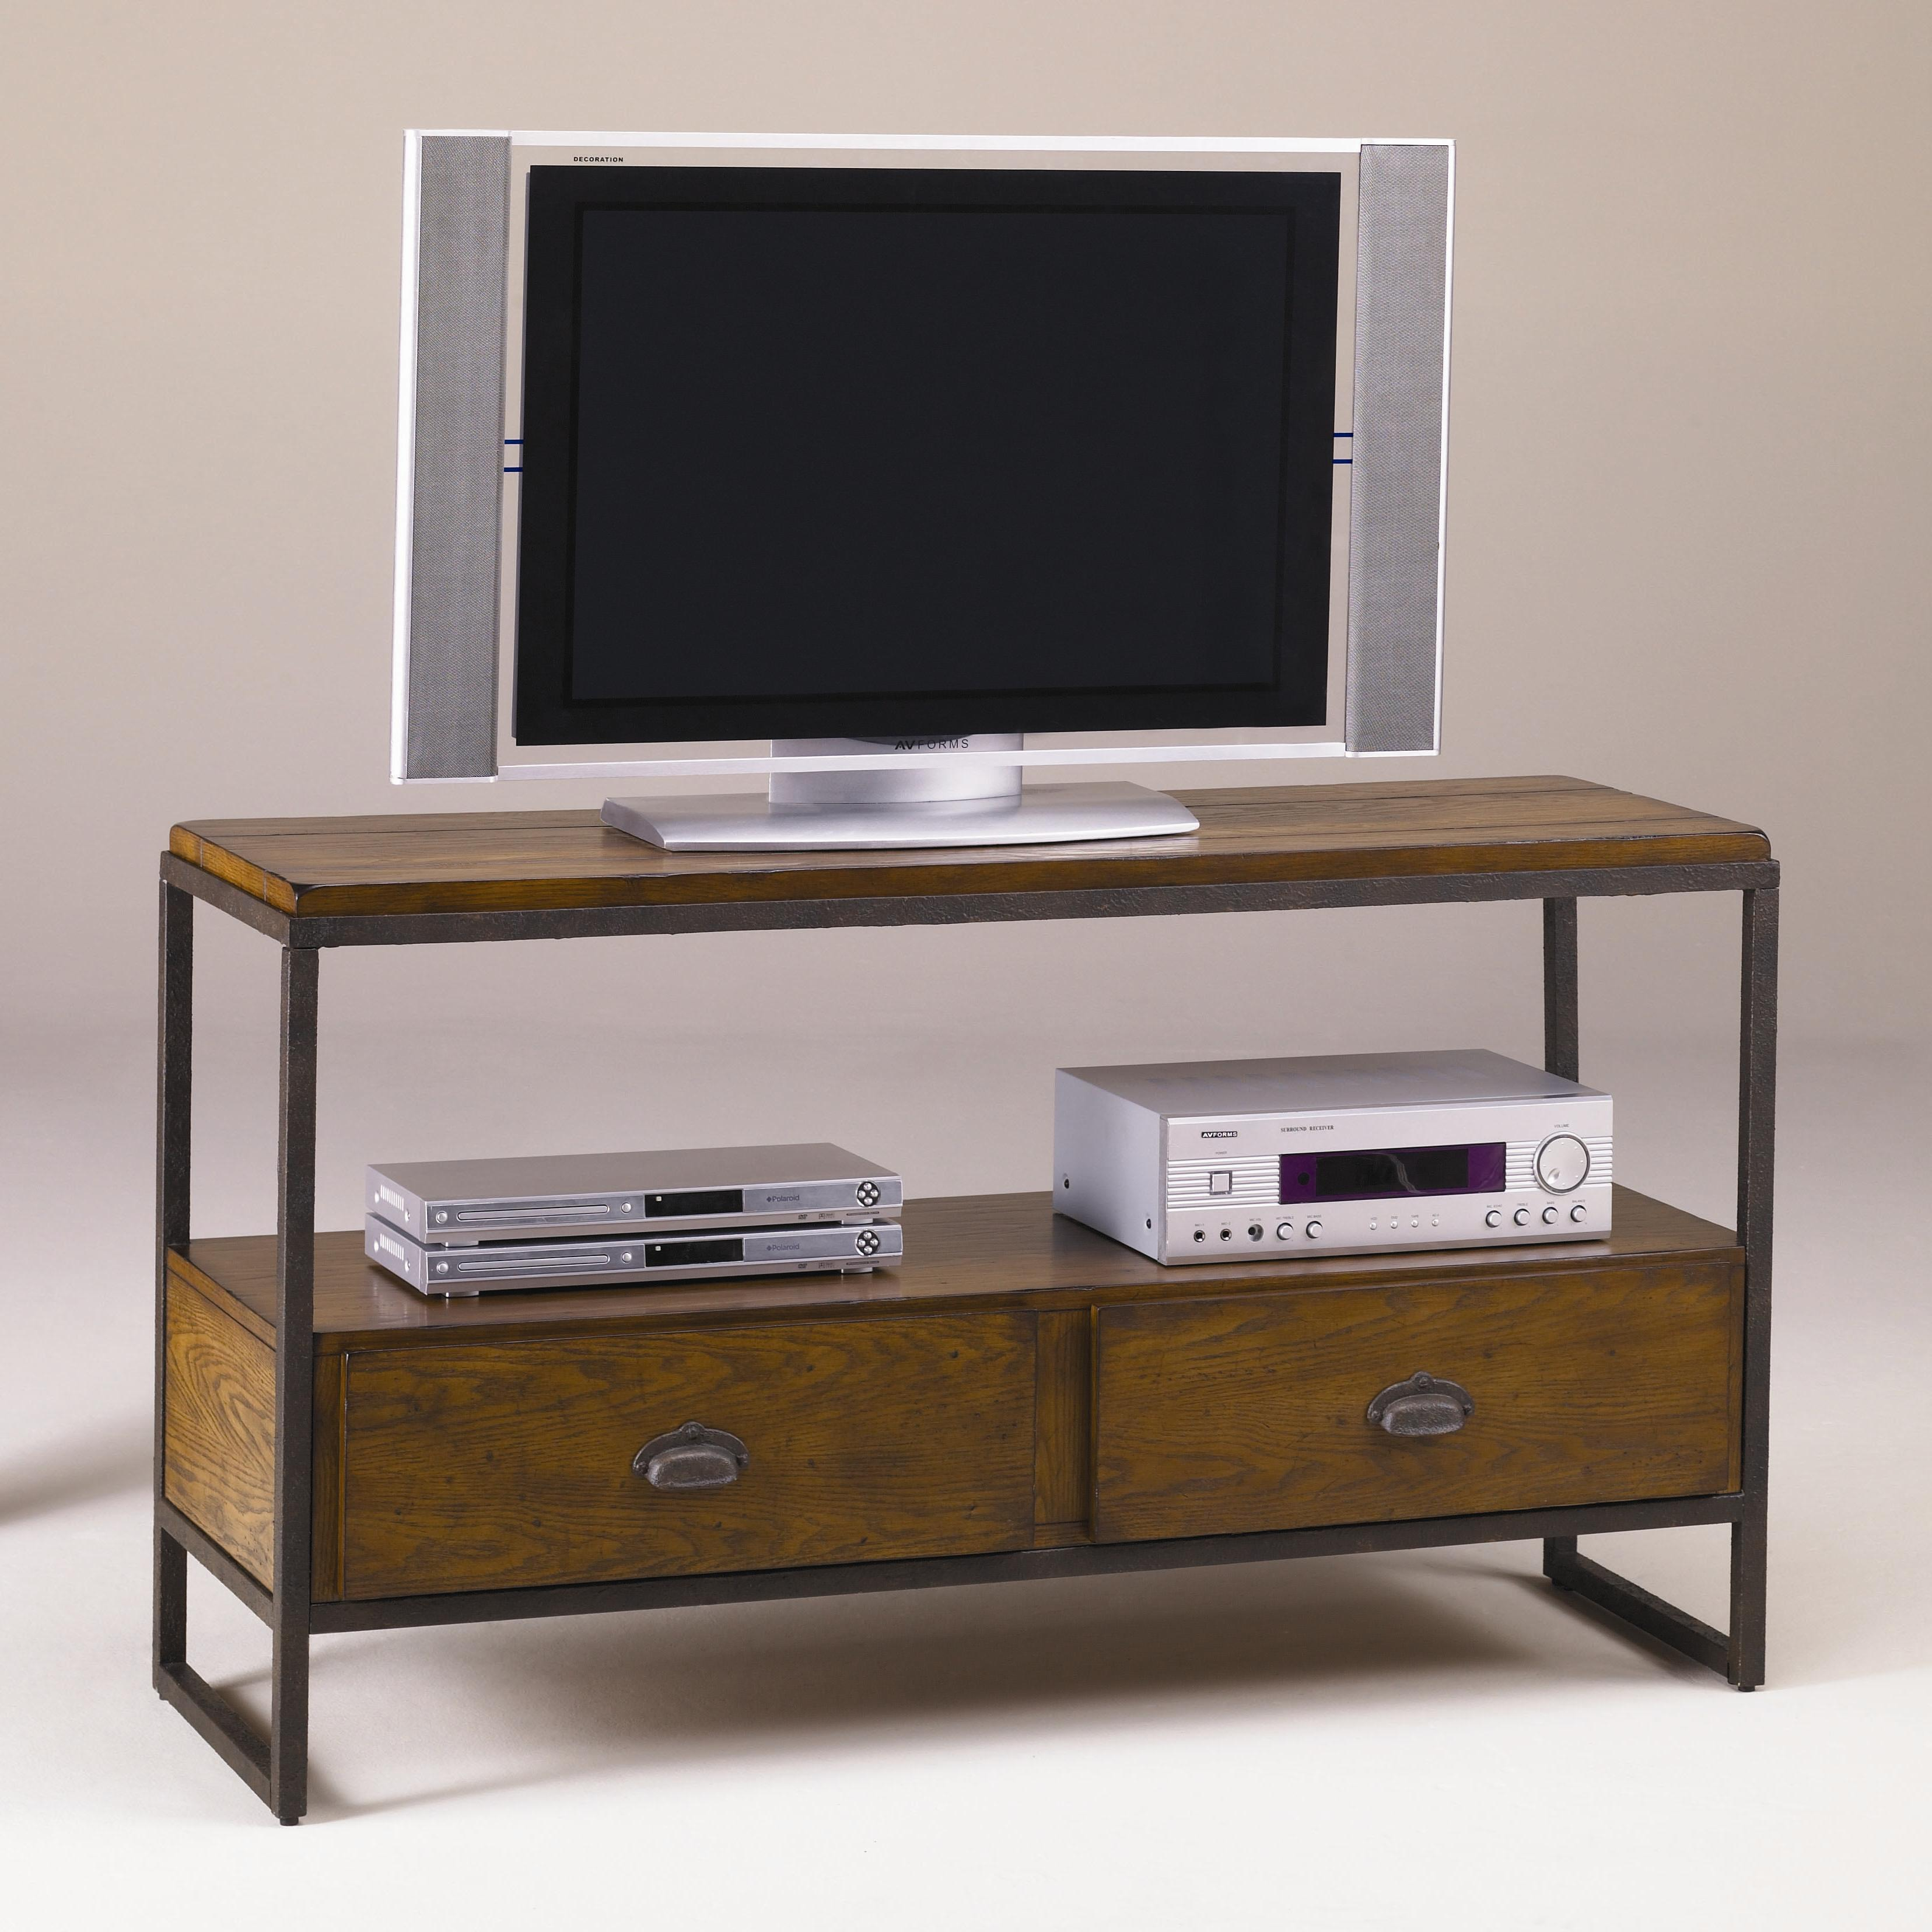 Hammary Baja Entertainment Console   Item Number: T2075286 00